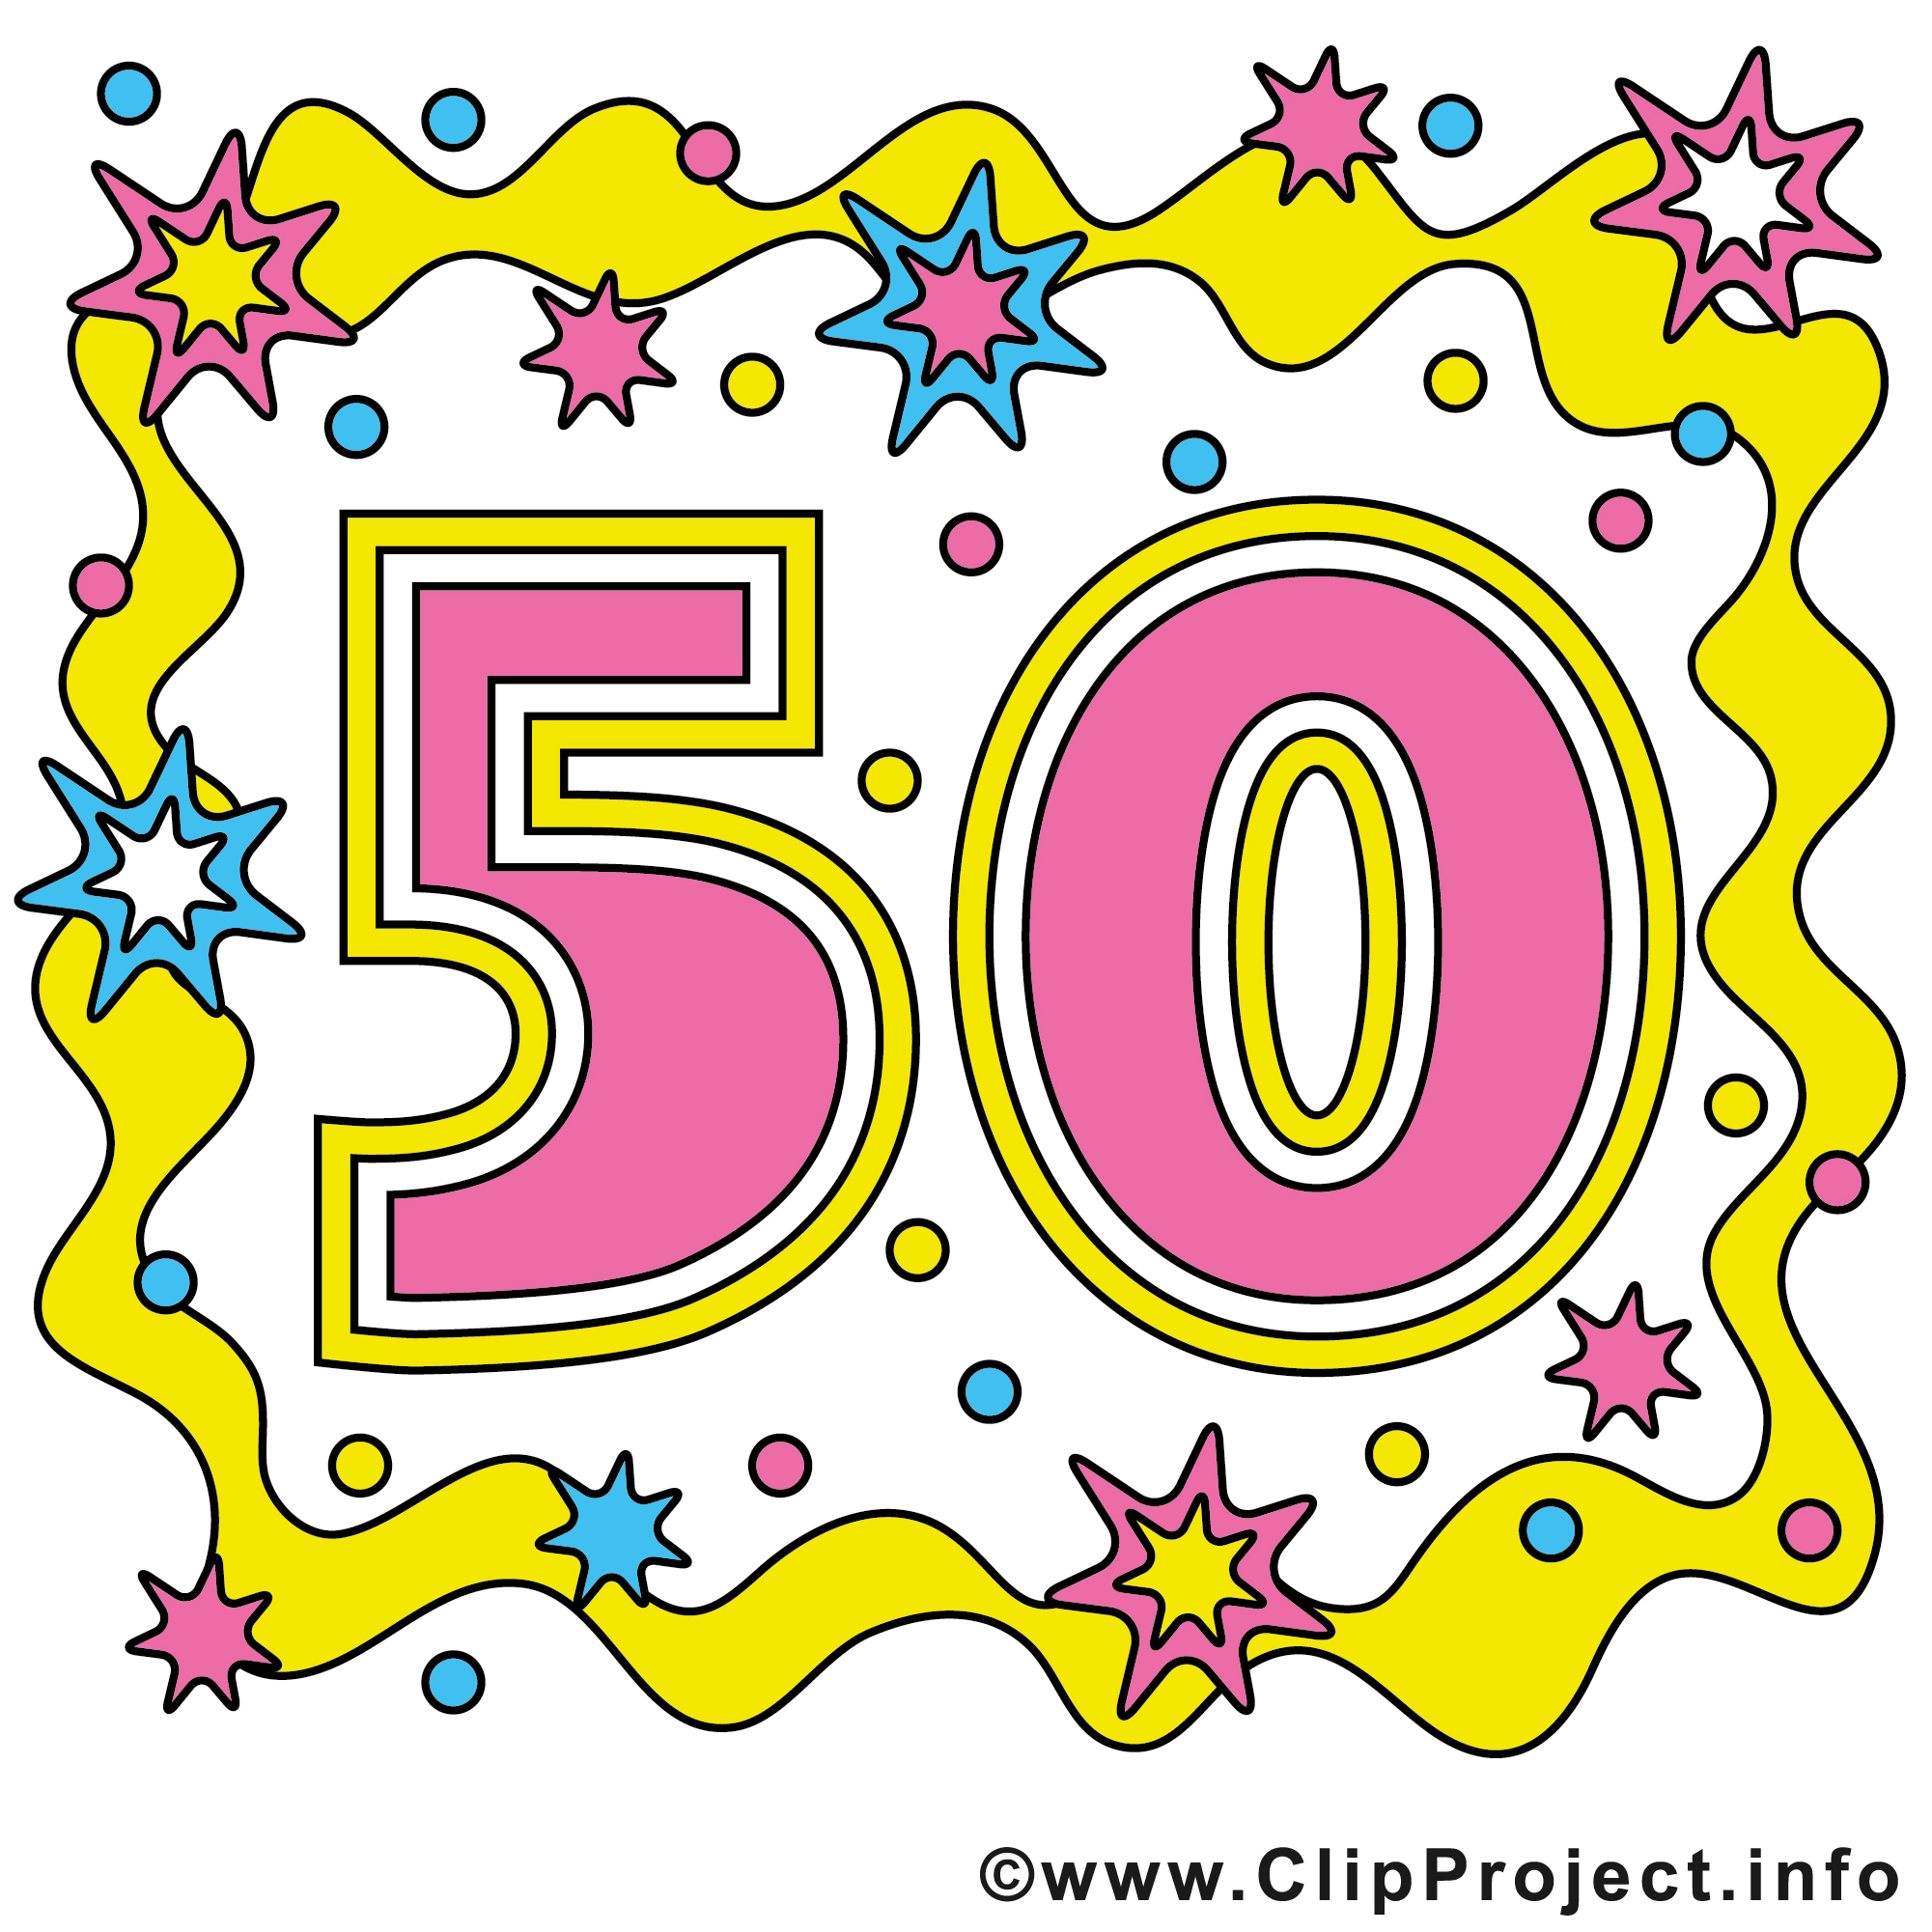 50 clipart clip art freeuse library 50 50 Clipart - Clipart Kid clip art freeuse library